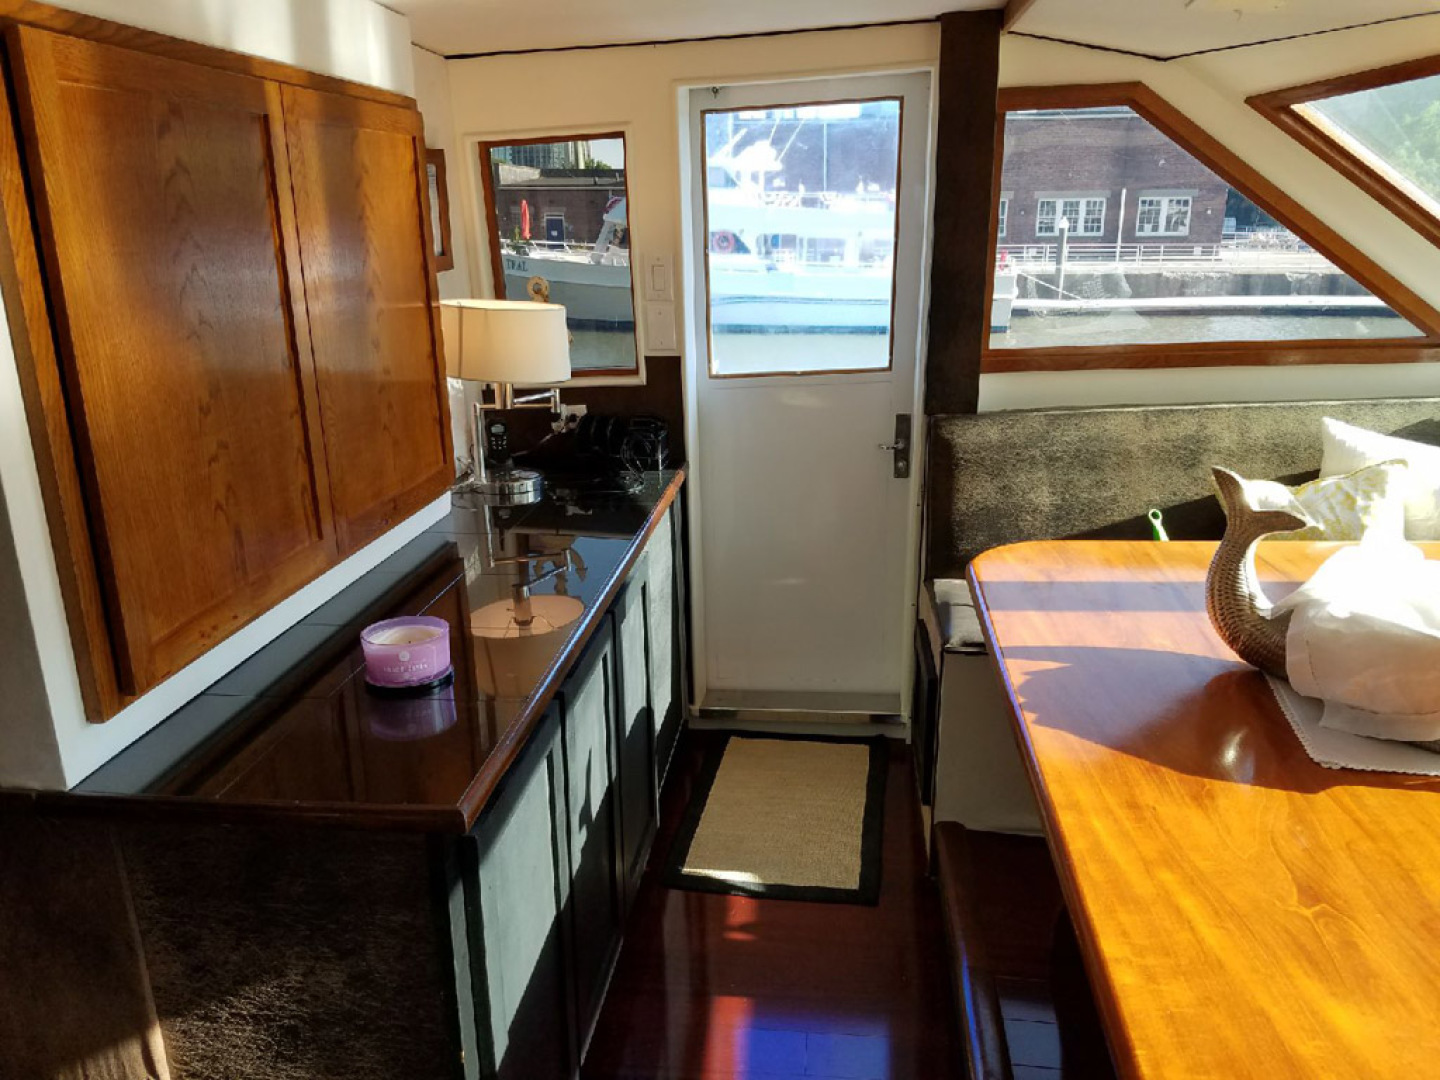 Hatteras-Cockpit Motoryacht 1989-Amelia Boca Raton-Florida-United States-Breakfast Area From Starboard To Port View-1206107 | Thumbnail